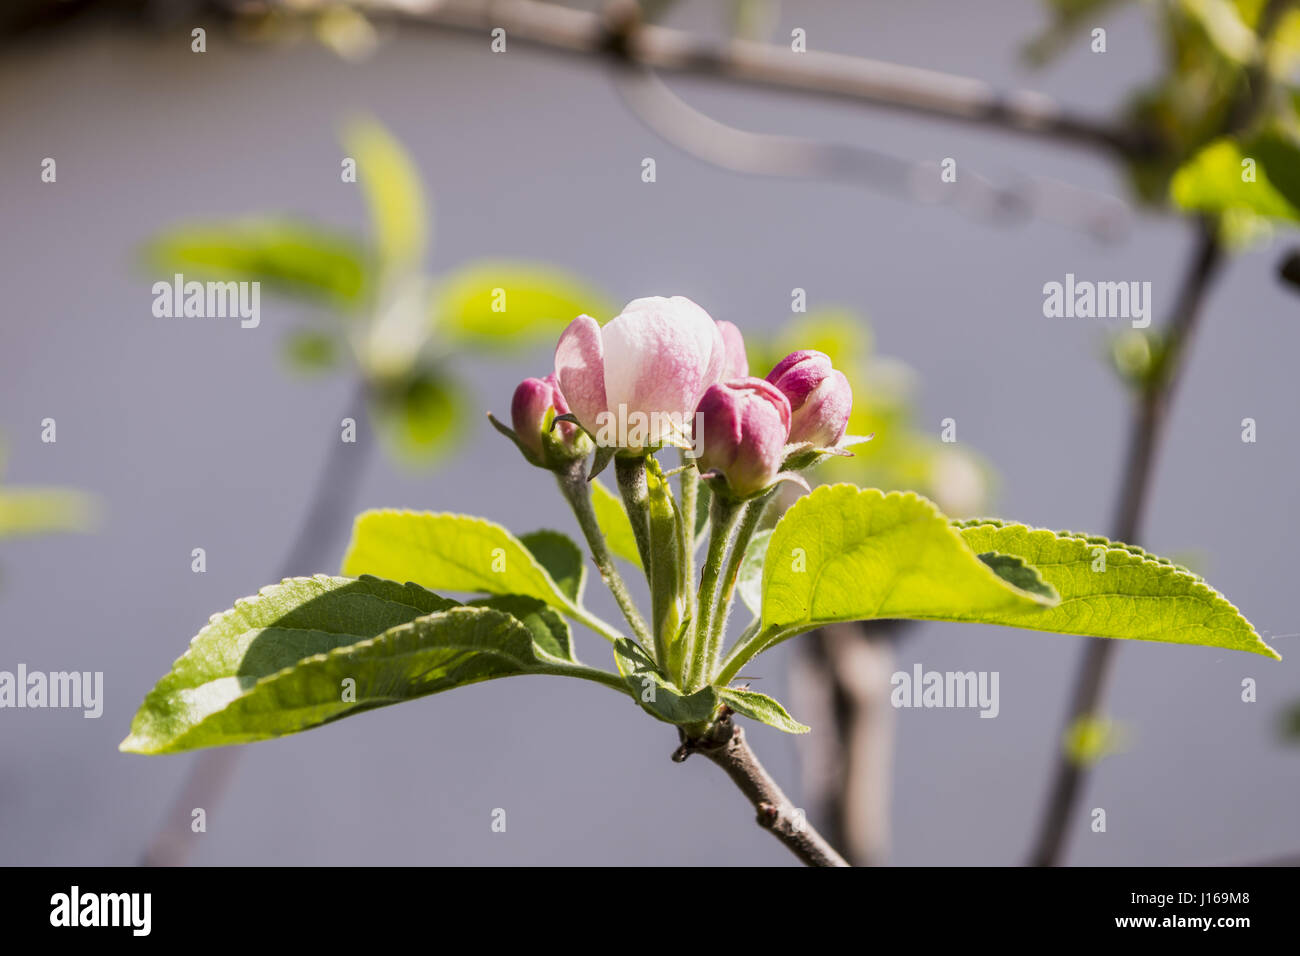 branches in bloom with buds and buds, pear and apple, for spring-flowering, - Stock Image